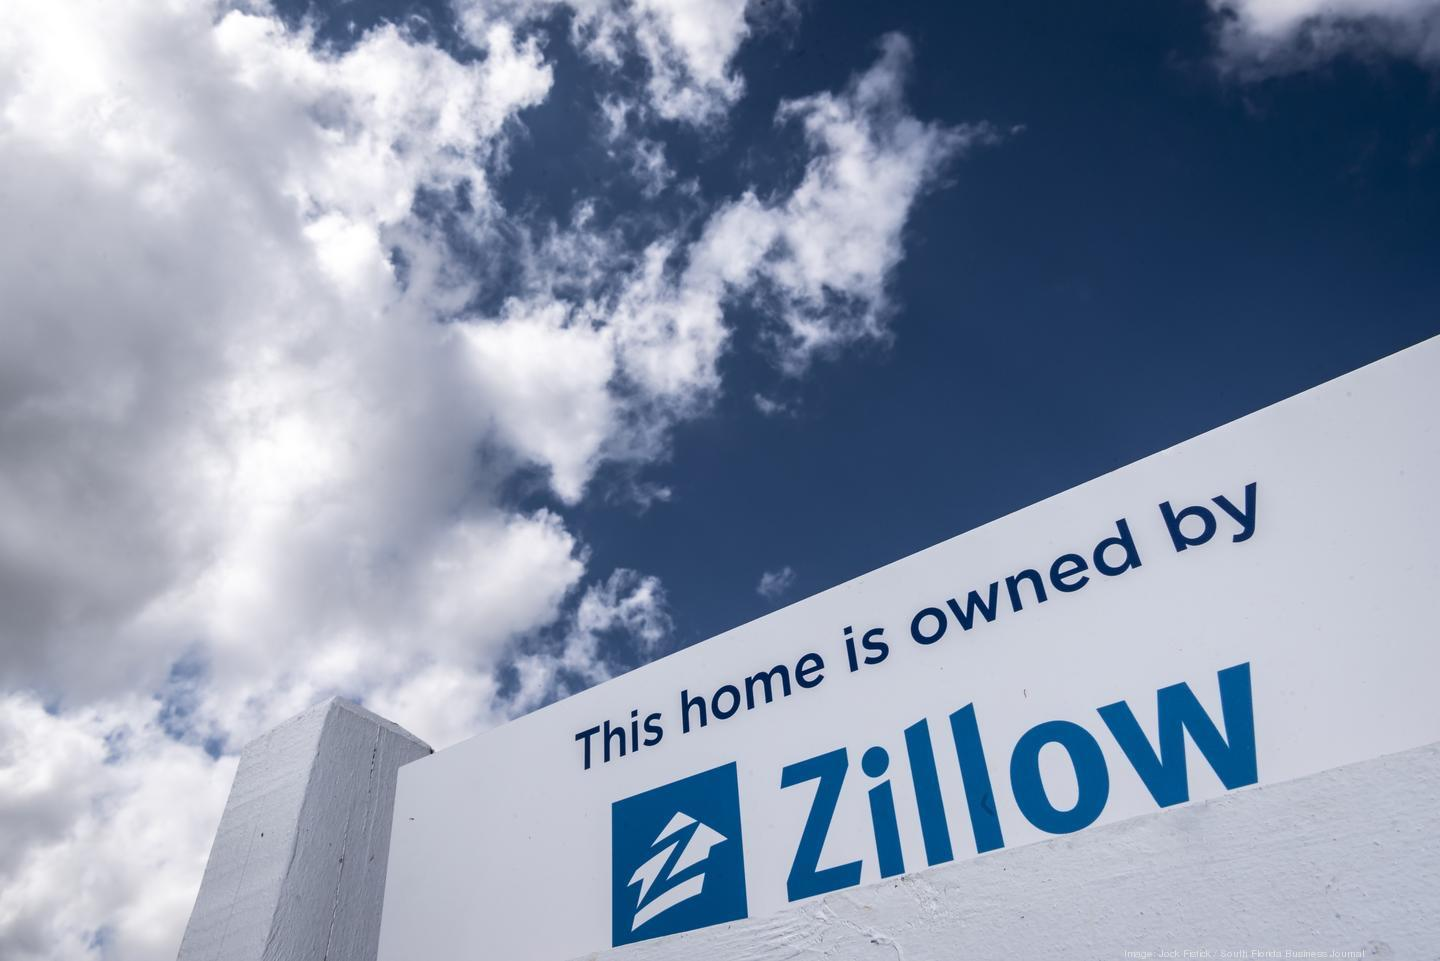 Zillow pauses home purchases, stock drops. Here's what other iBuyers are doing